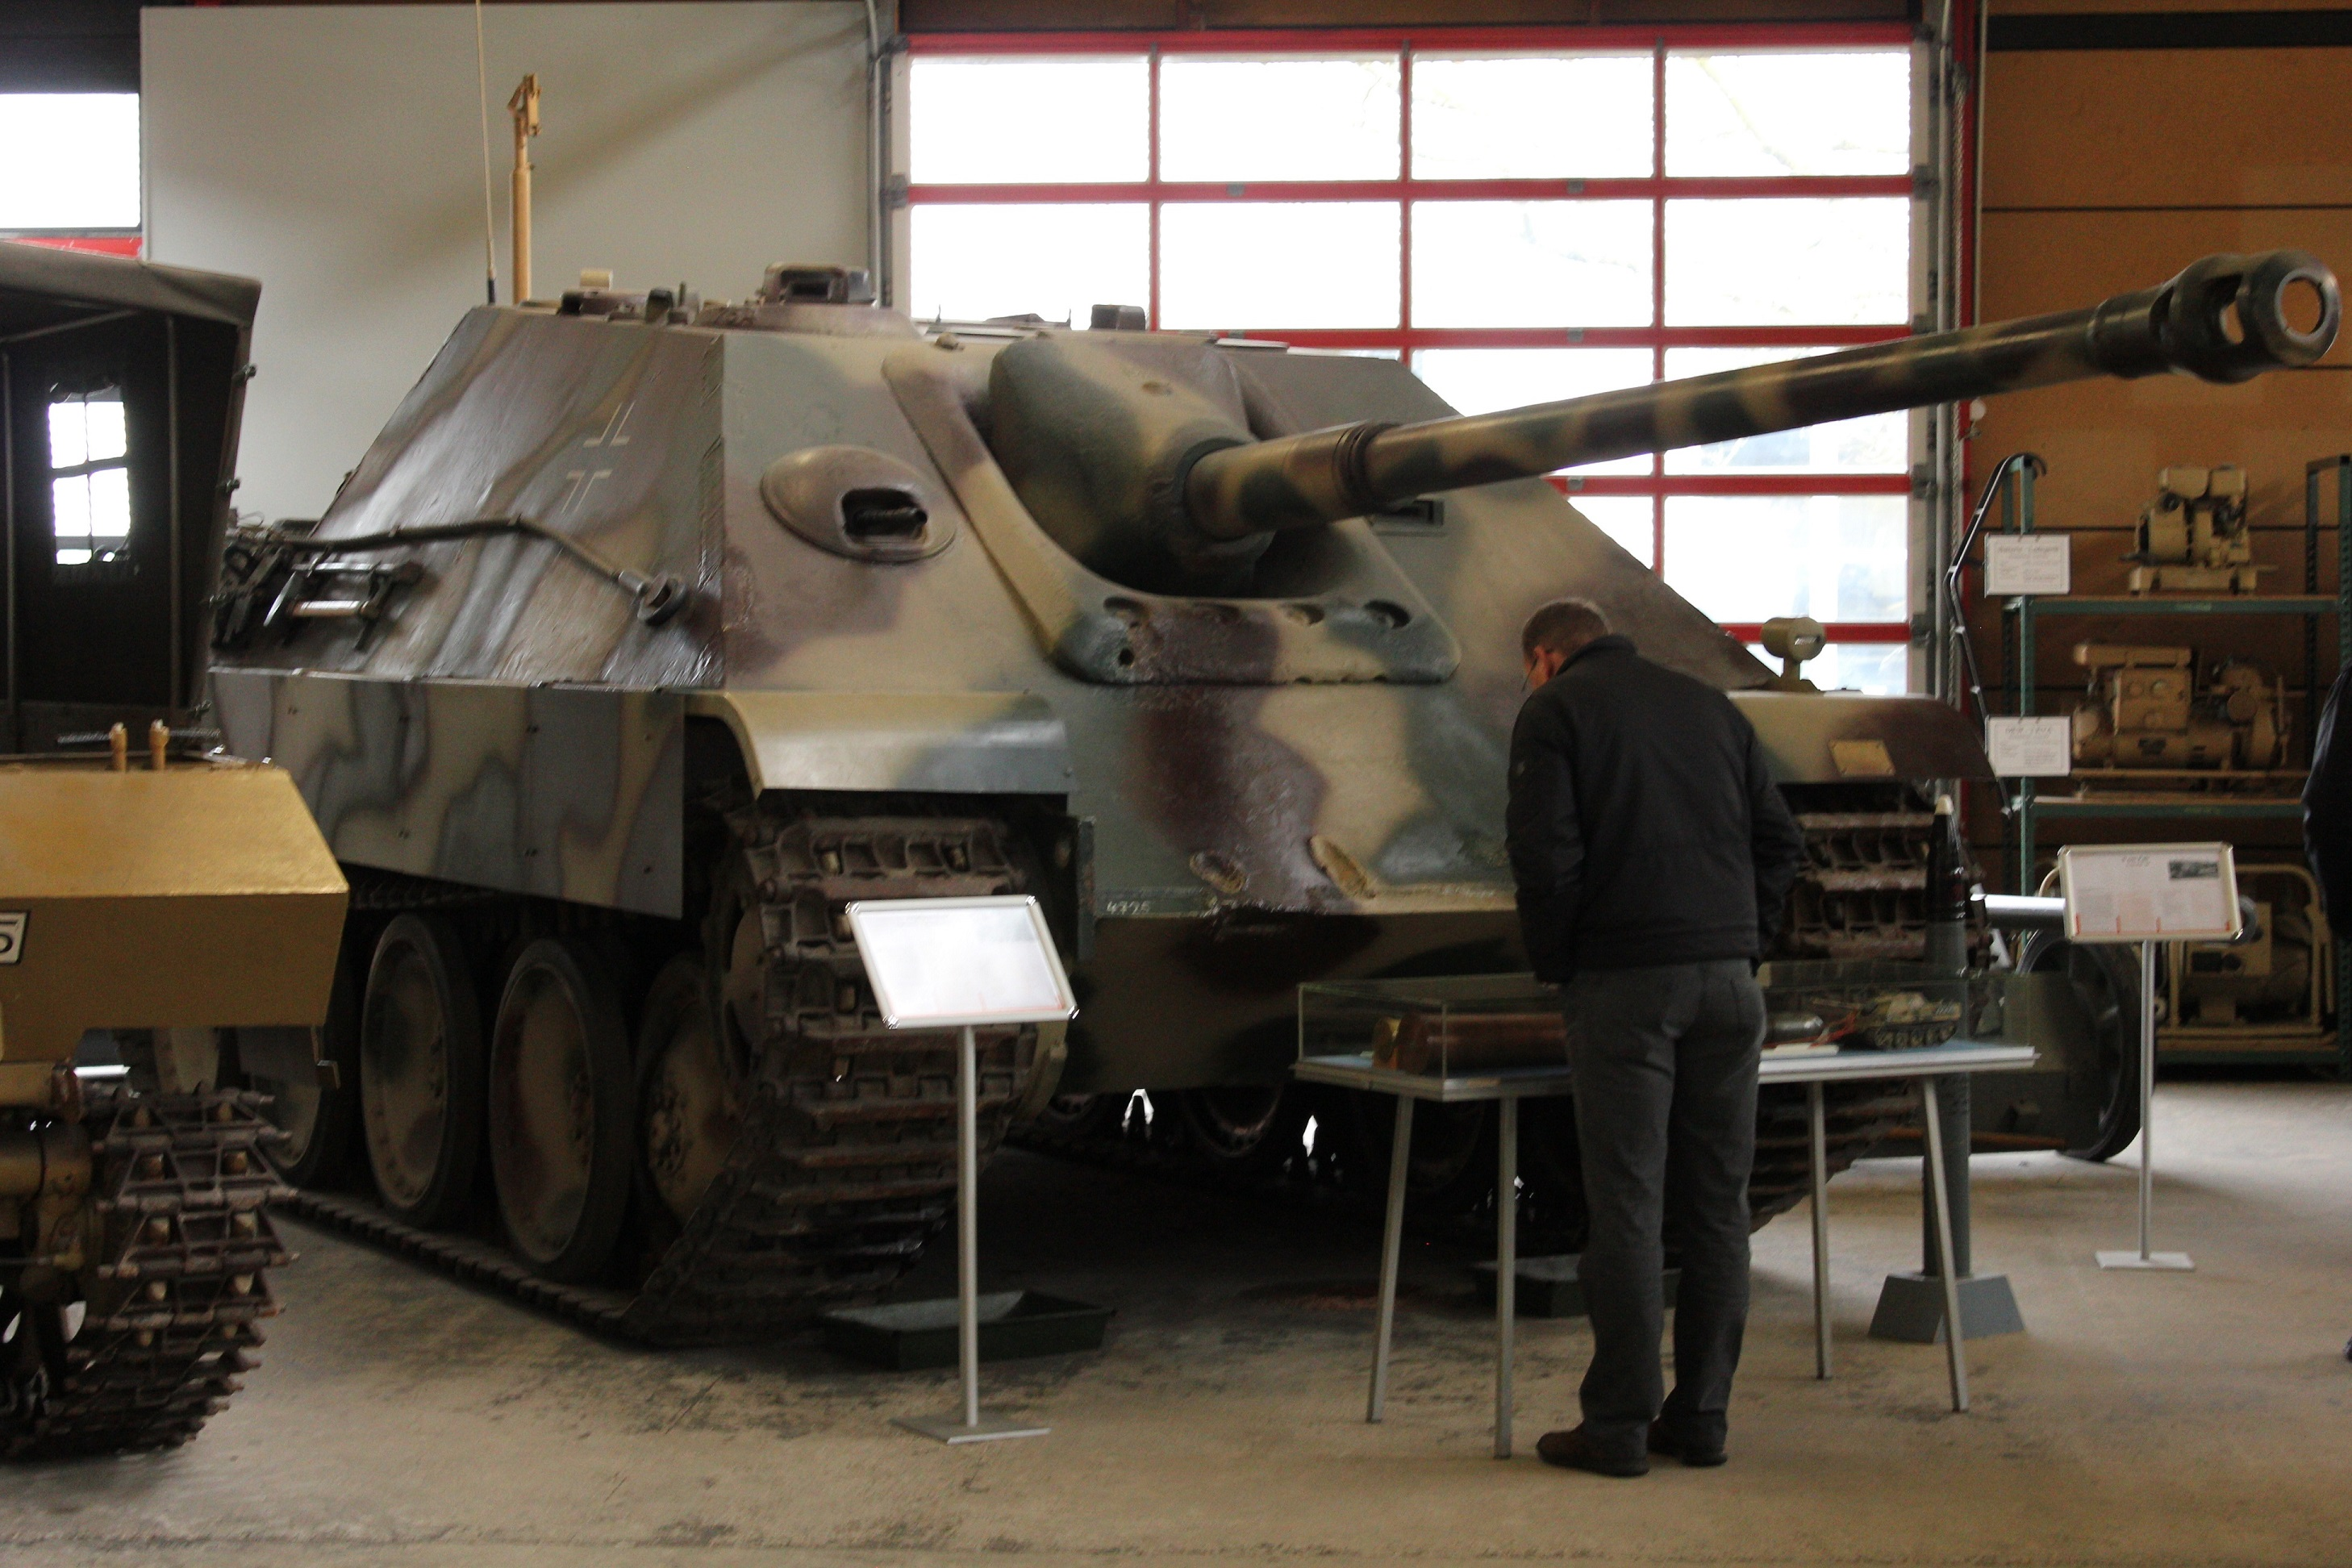 Another view of the Jagdpanther in Munster. Notice the shell marks on the front glacis.